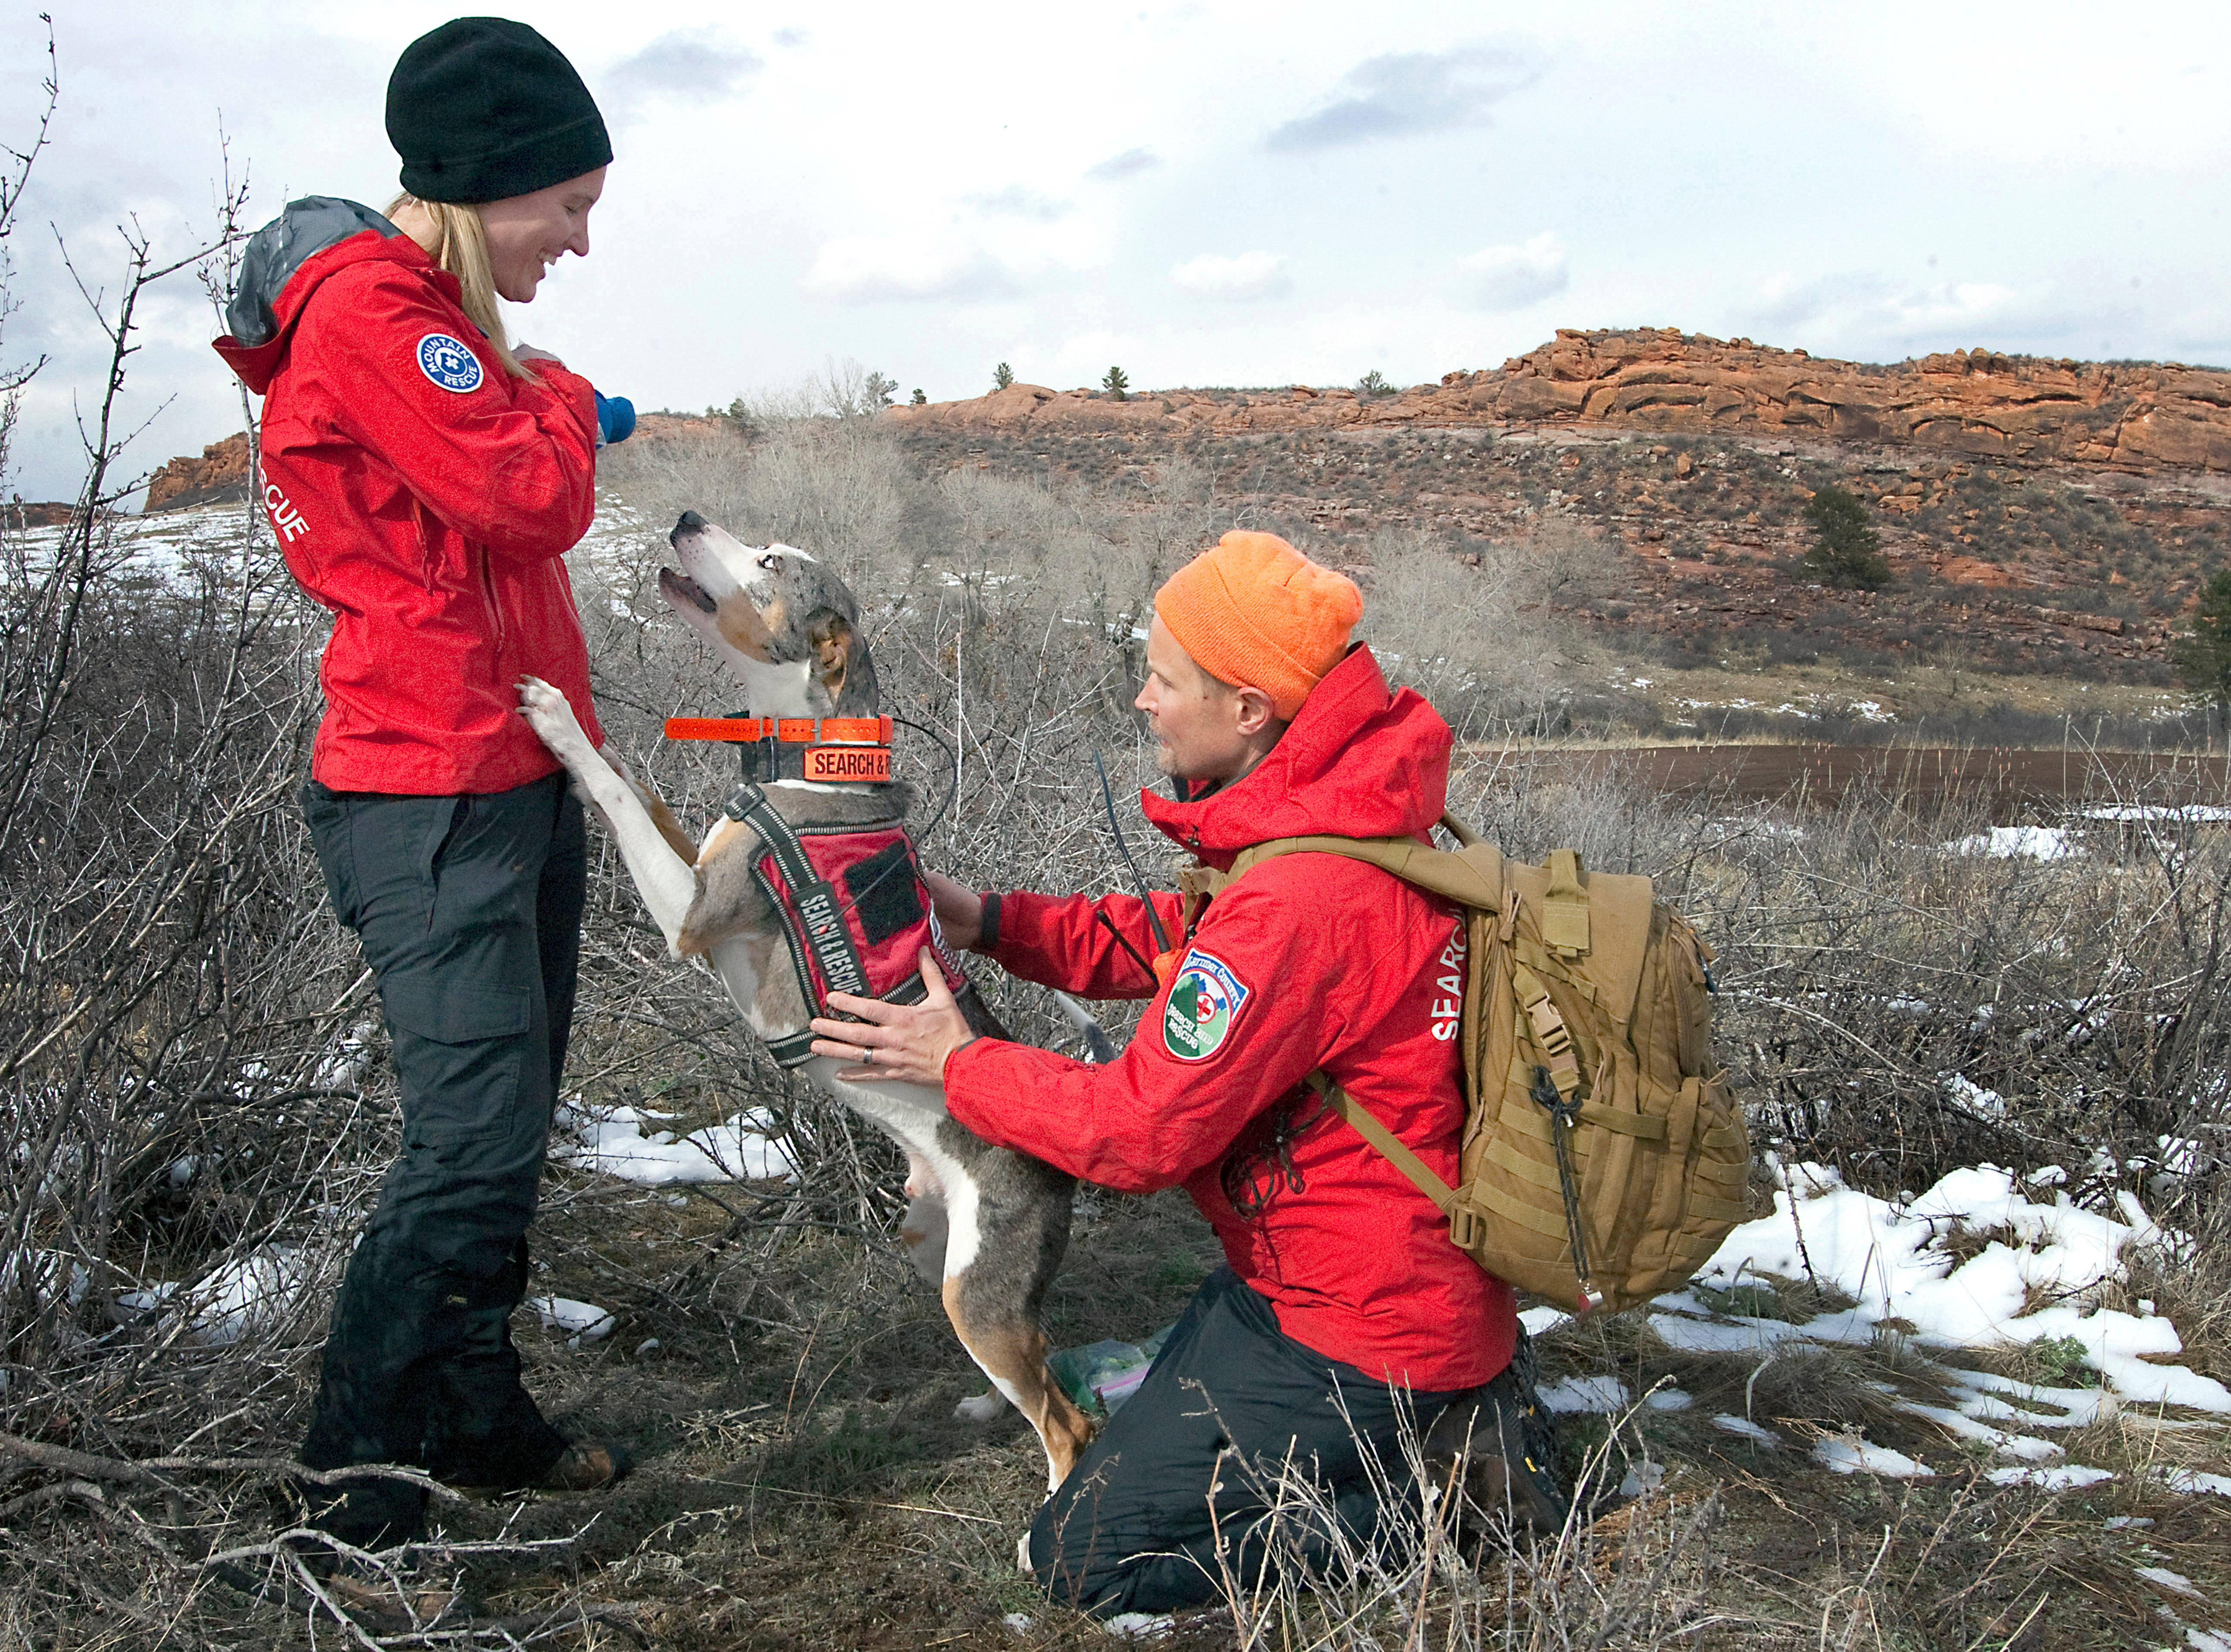 Joel Blocker / For the Coloradoan